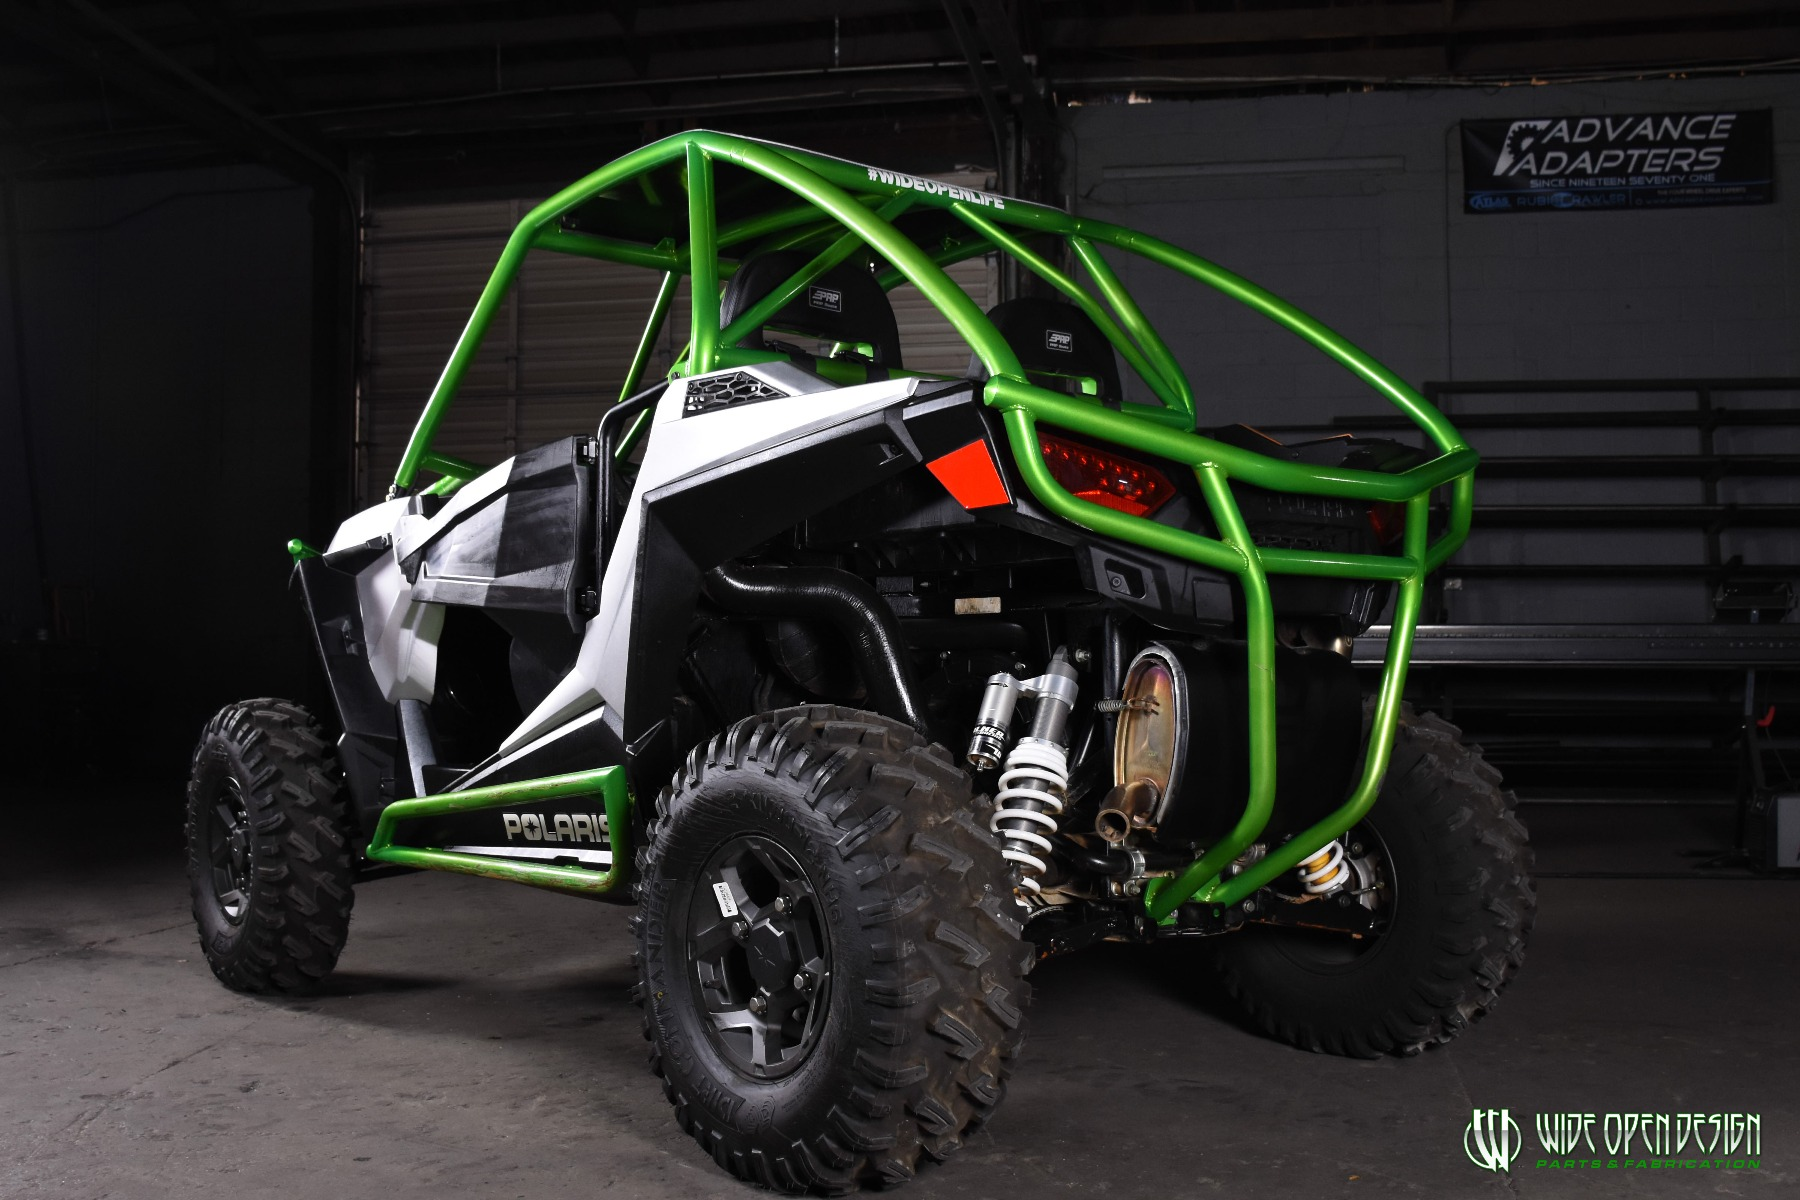 Jason's 1000s RZR with Wide Open Design Rolled Roof Cage, Front Bumper with Tie In, and Rocker Guards 24